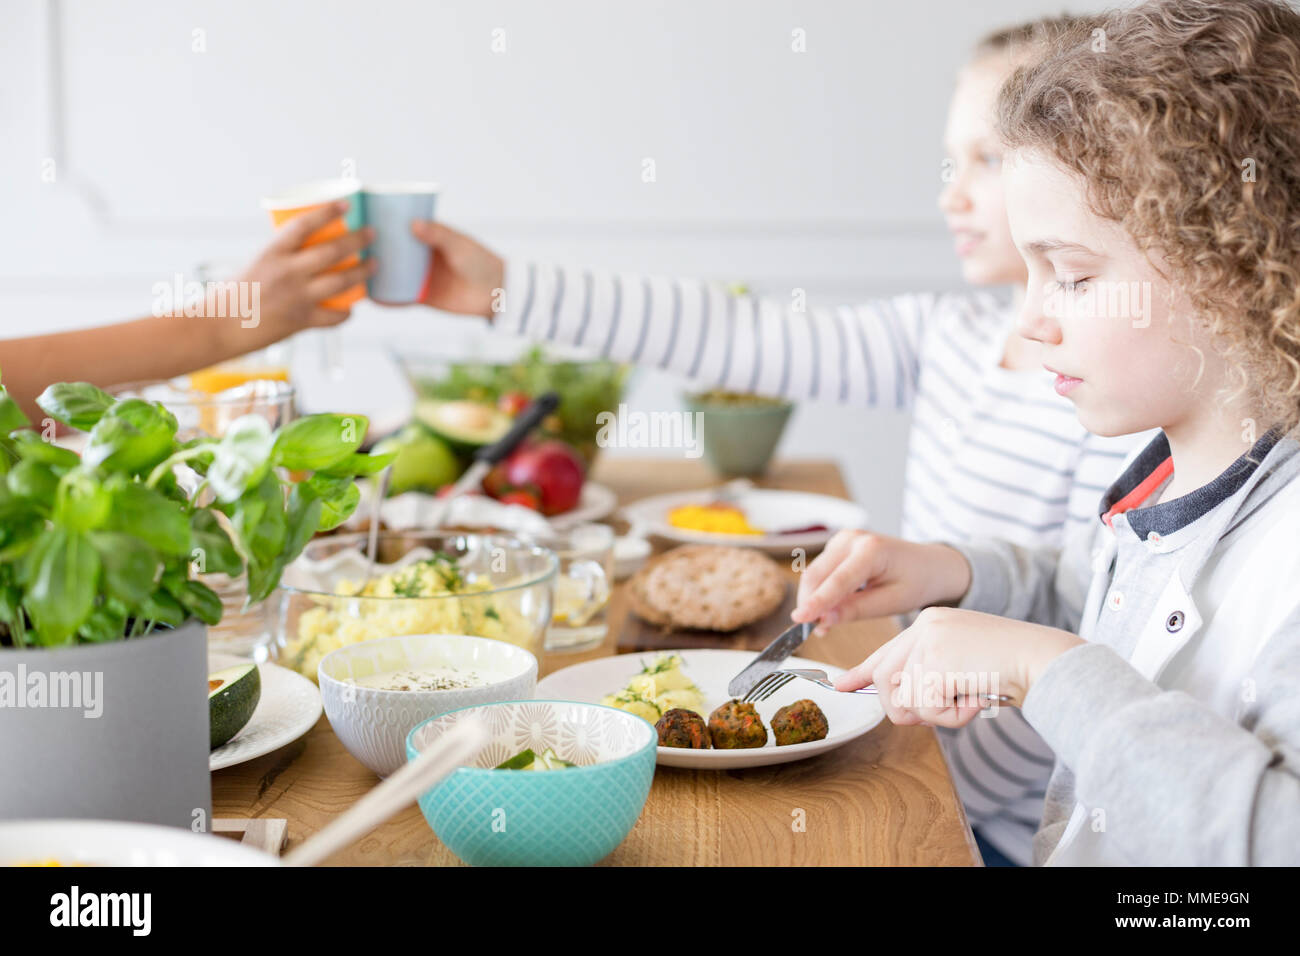 Boy eating falafel during birthday party at home. Healthy diet for kids - Stock Image